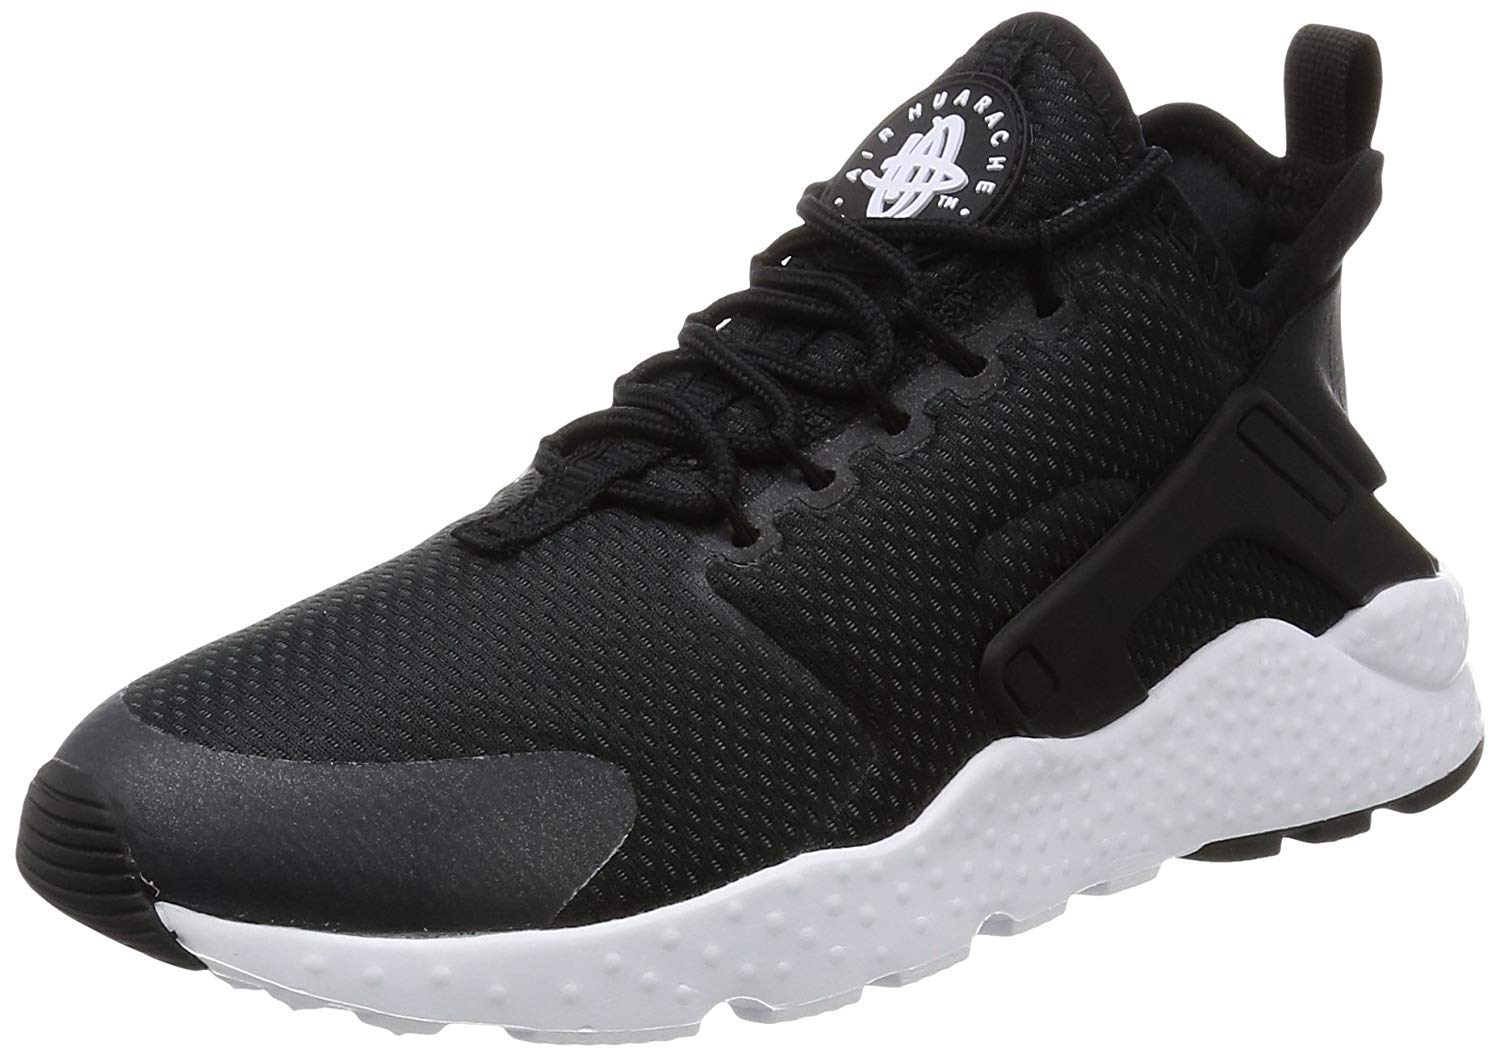 543d06821c Galleon - NIKE Womens Air Huarache Run Ultra Low Top Lace Up, Black/White,  Size 12.0